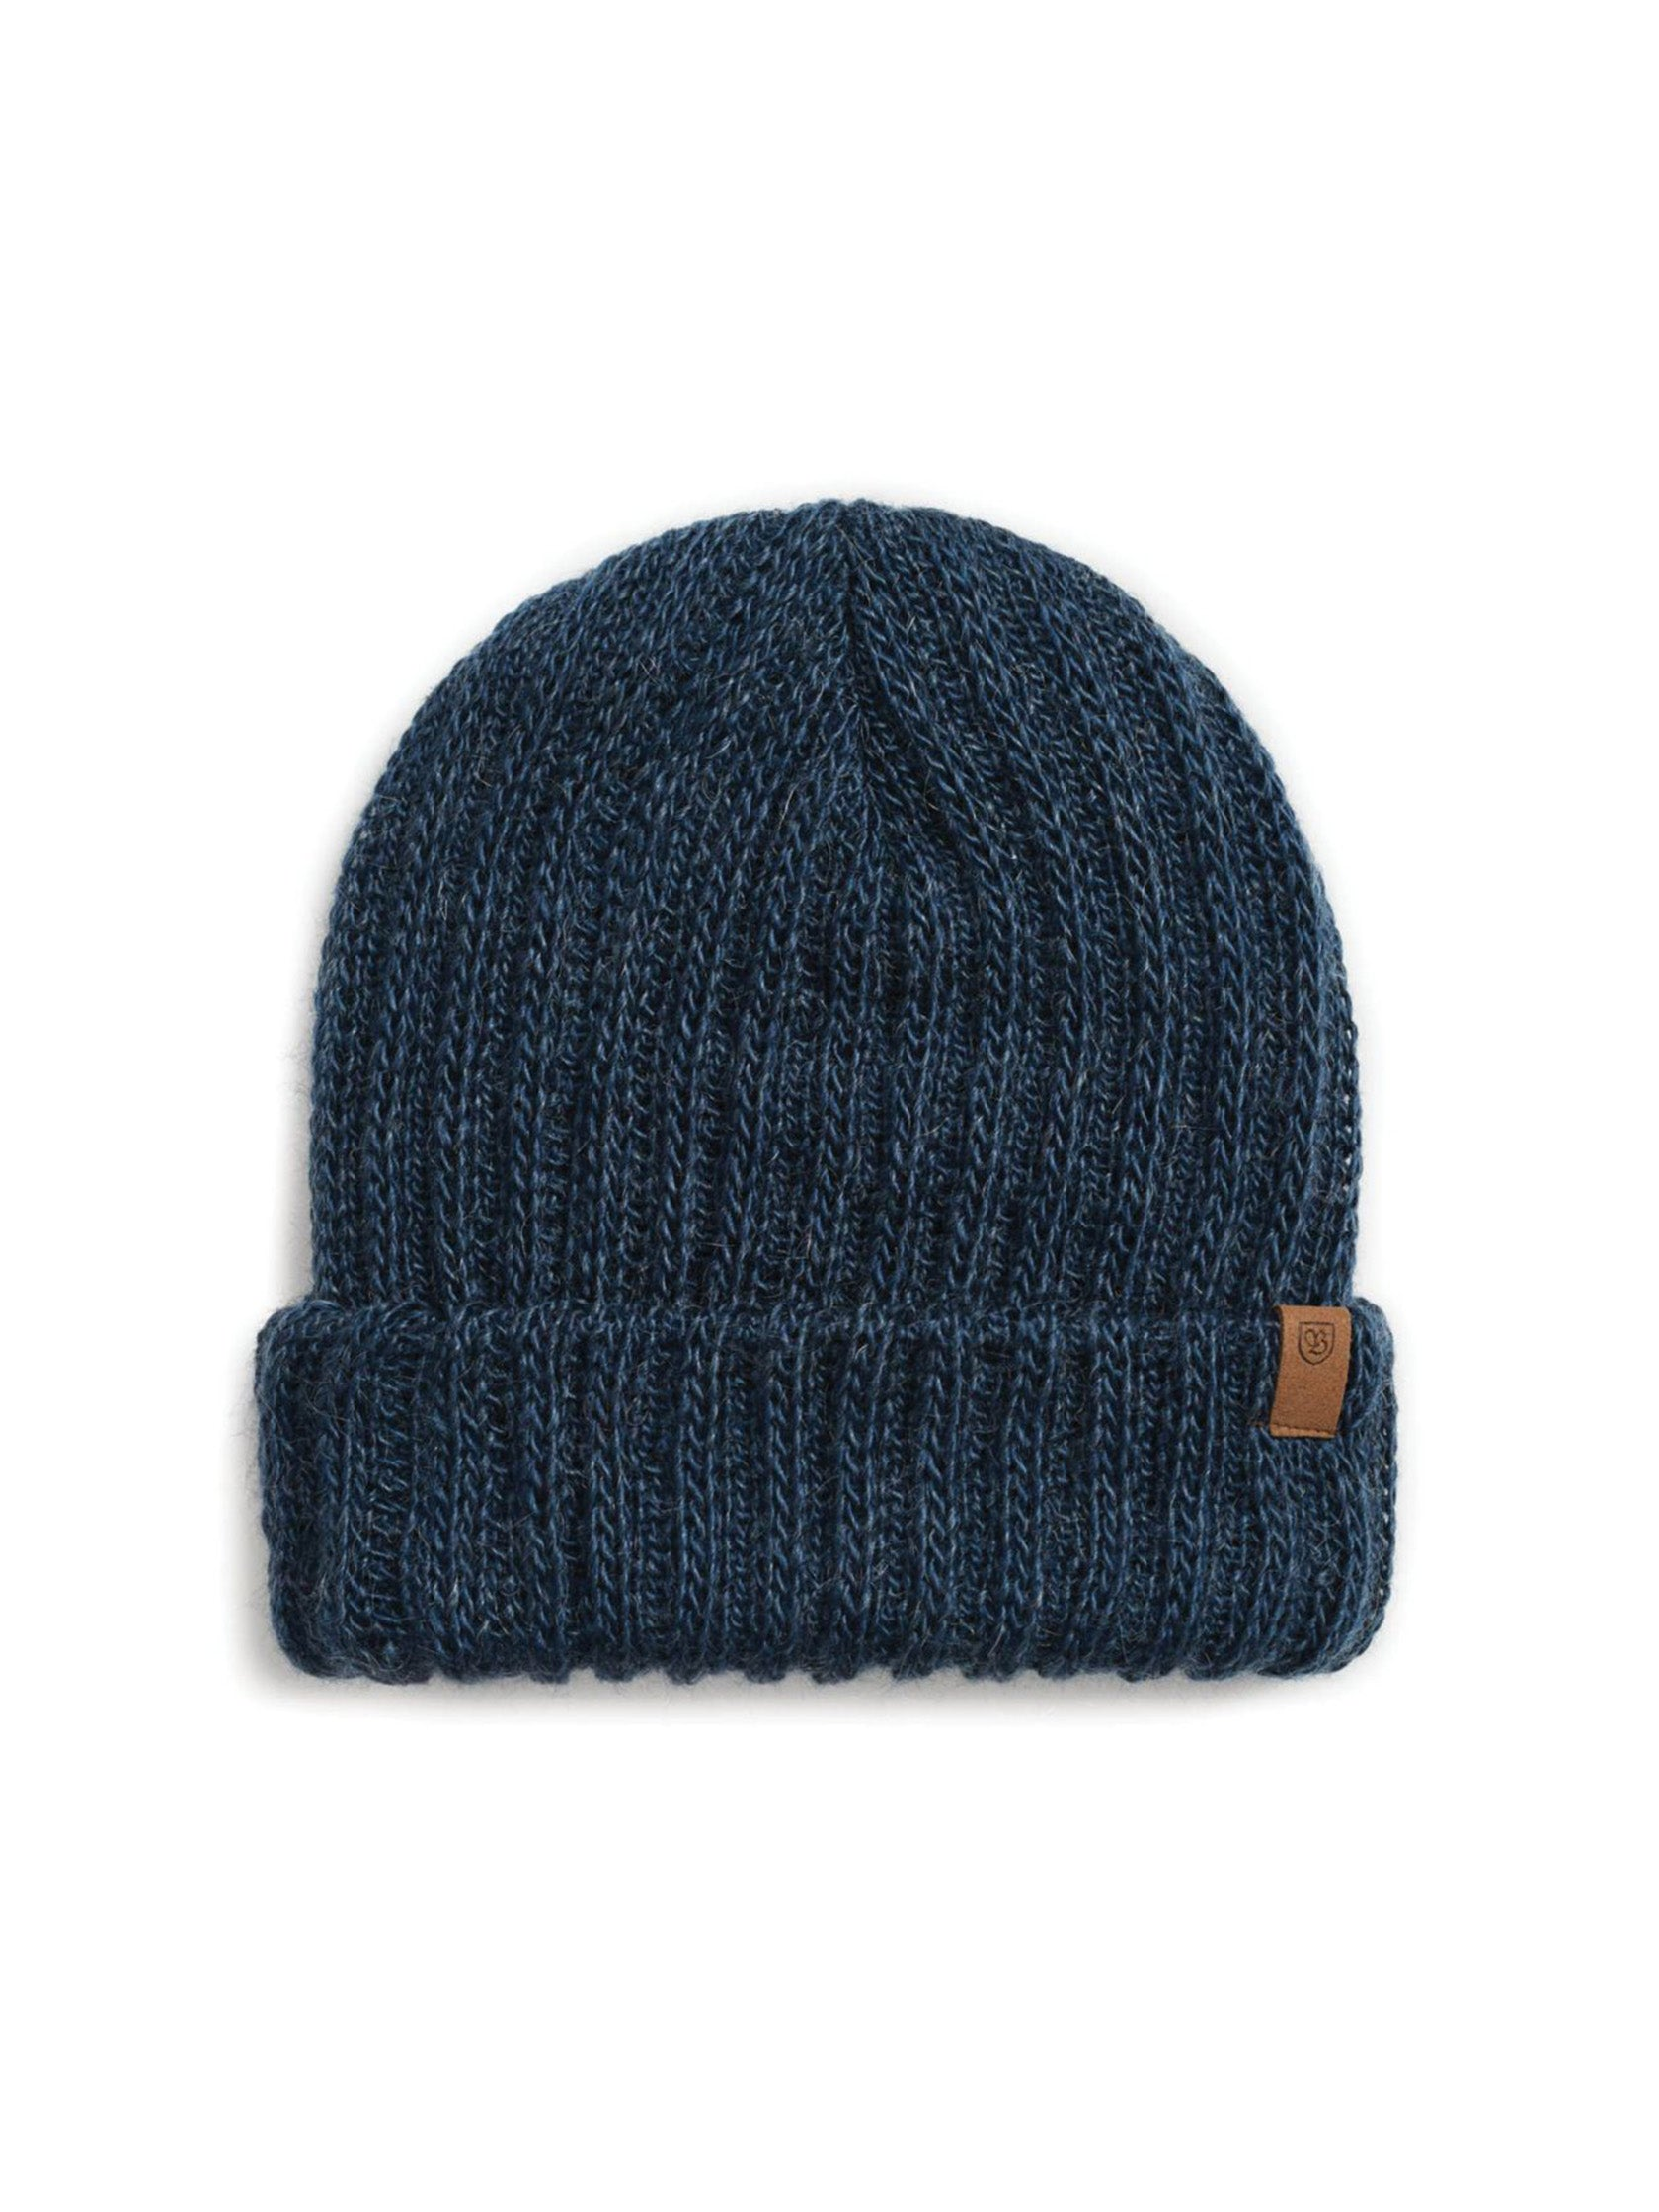 47864273408 Woman wearing a hat rental from Brixton called Valerie Beanie